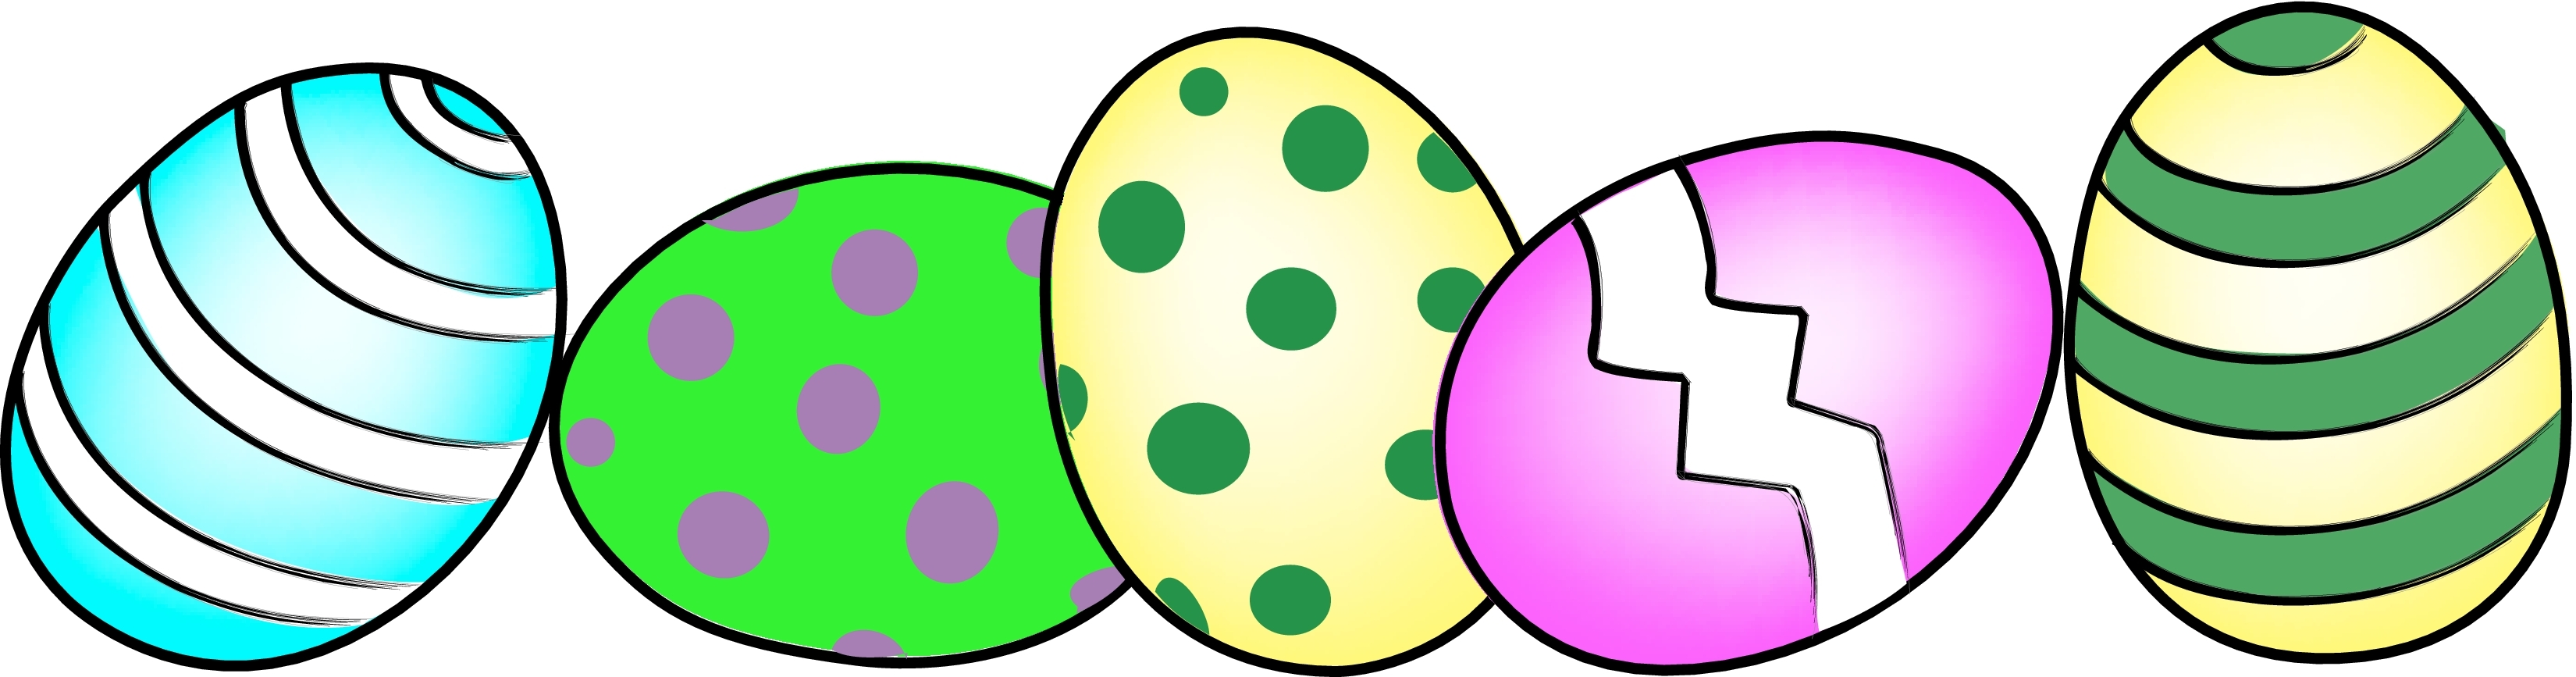 easter clip art free download - photo #13